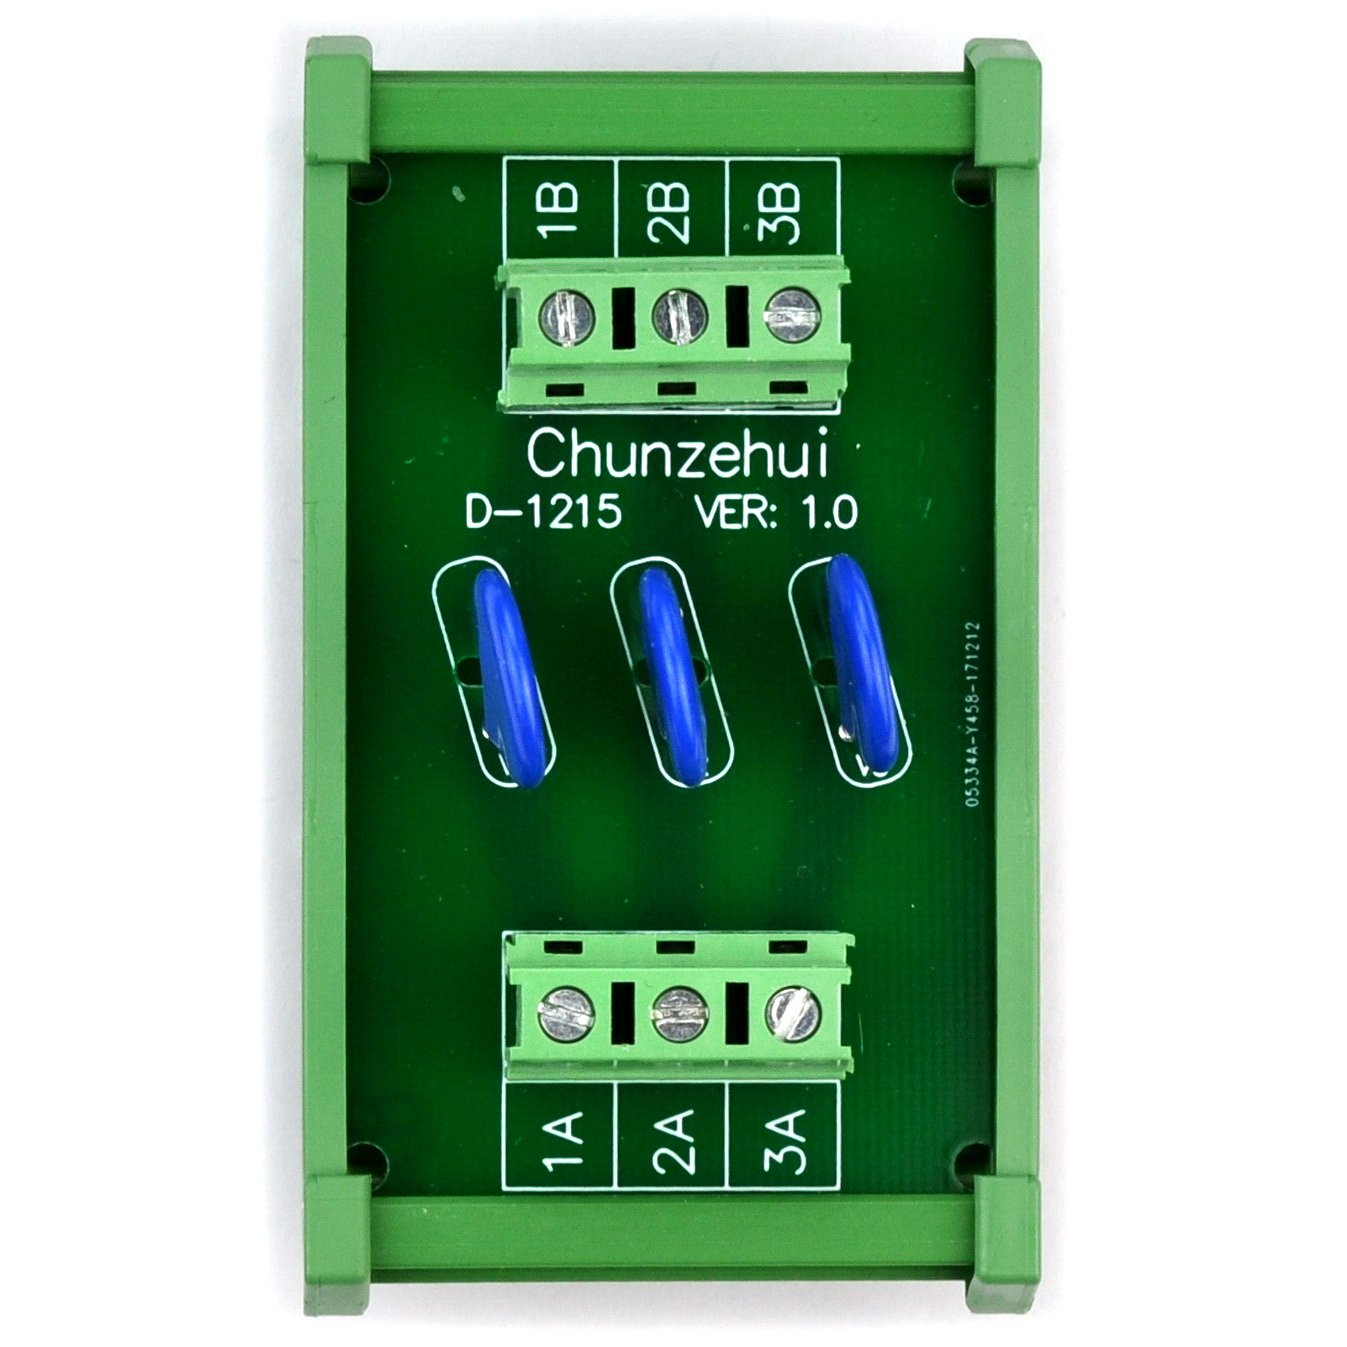 Chunzehui 3 Channels Individual DIN Rail Mount 30V SIOV Metal Oxide Varistor Interface Module Surge Suppressor Protection SPD Board.